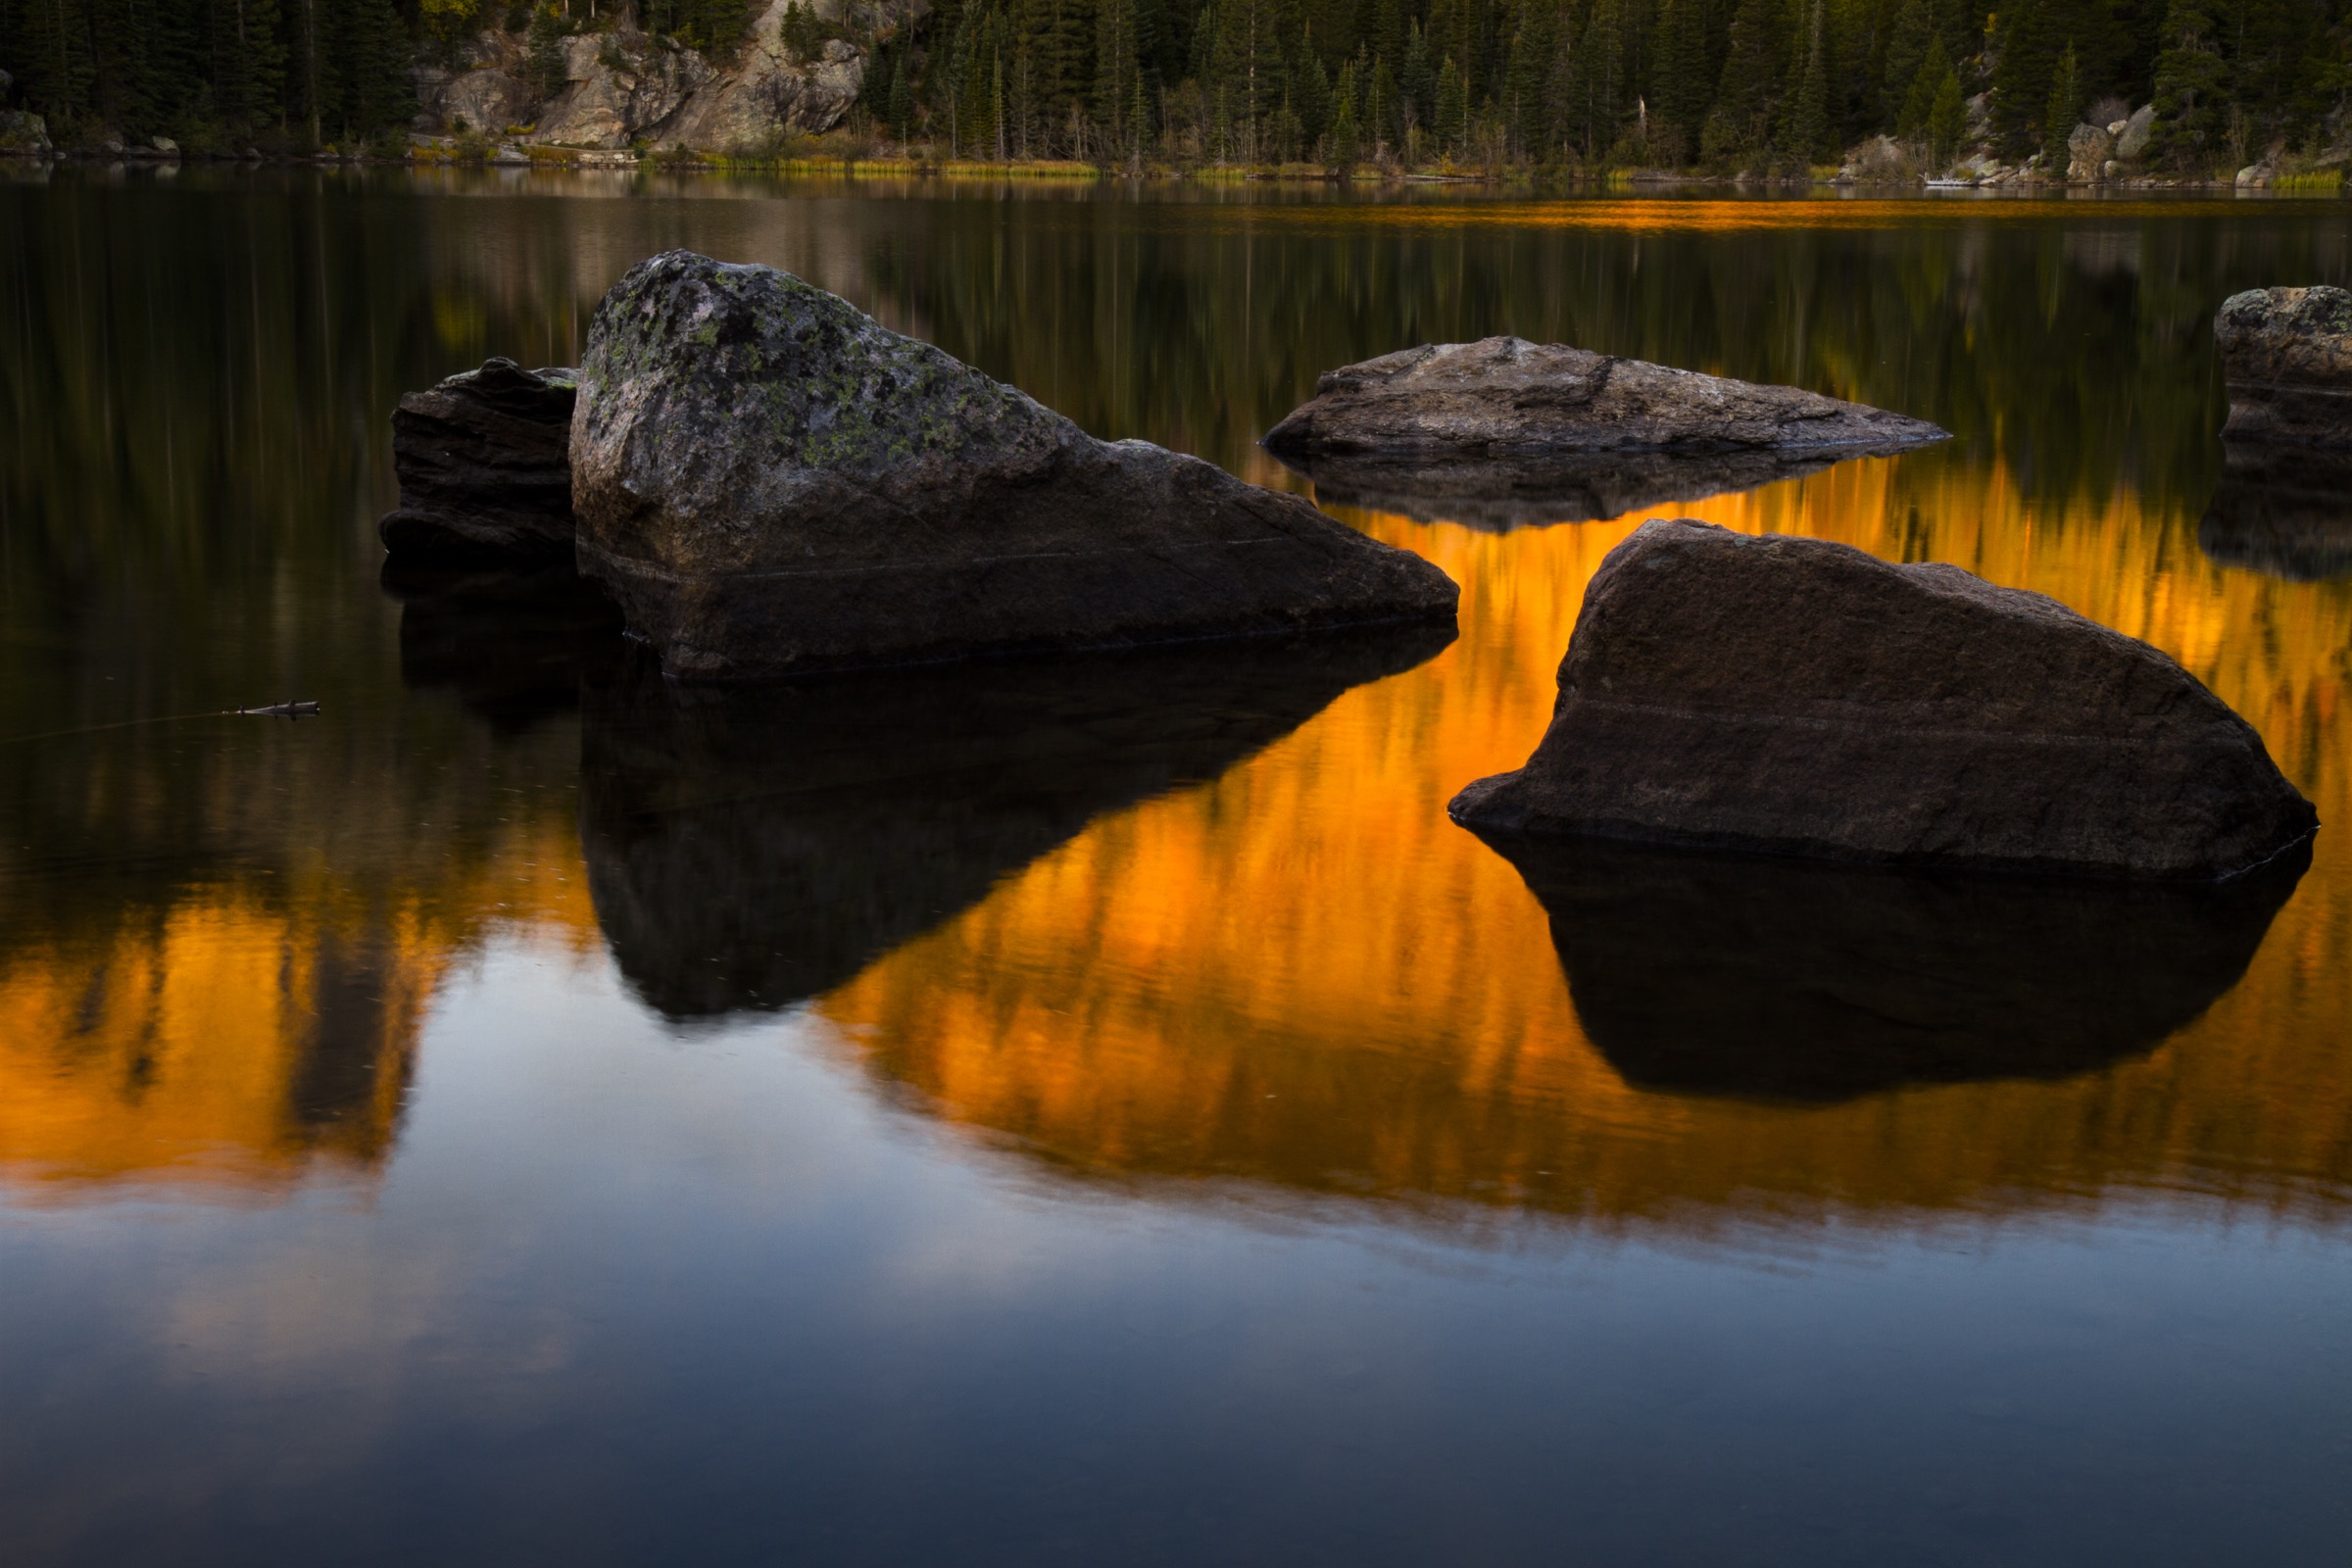 Streams and lakes across much of the greenback'srange have been hit hard by pollution, dams, sedimentation, and the introduction of non-native species. In contrast, Rocky Mountain National Park has provided a nearly pristine setting for restoration efforts. Photograph by William Hughes